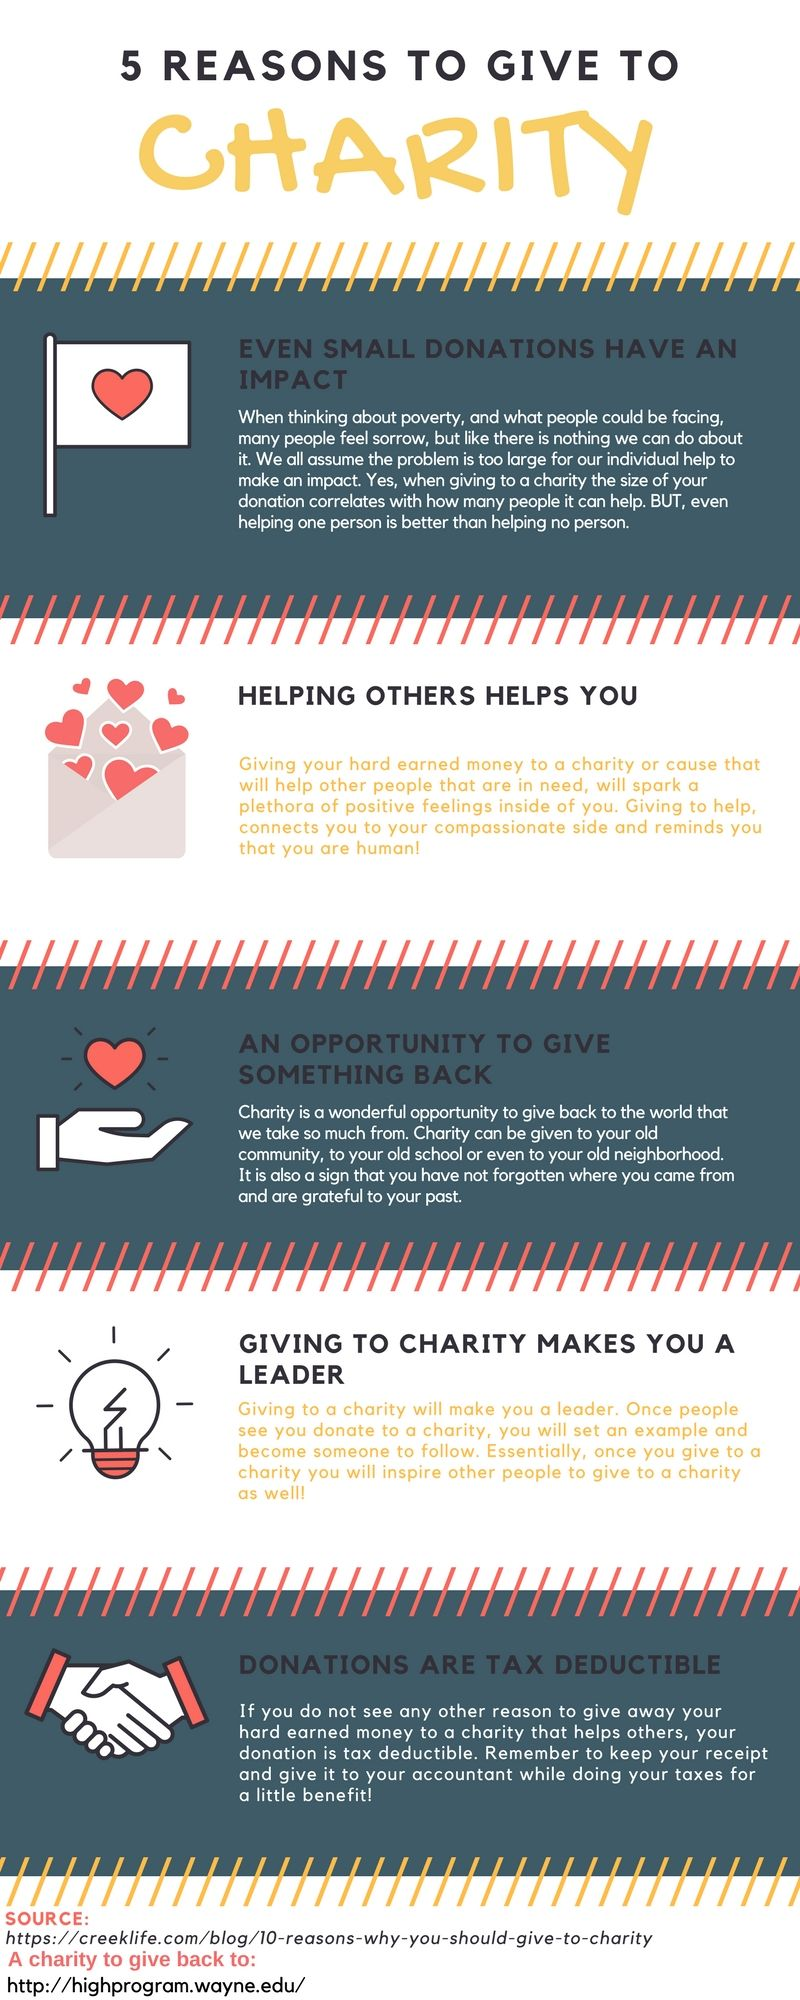 How to Give to Charity when You Have Debt